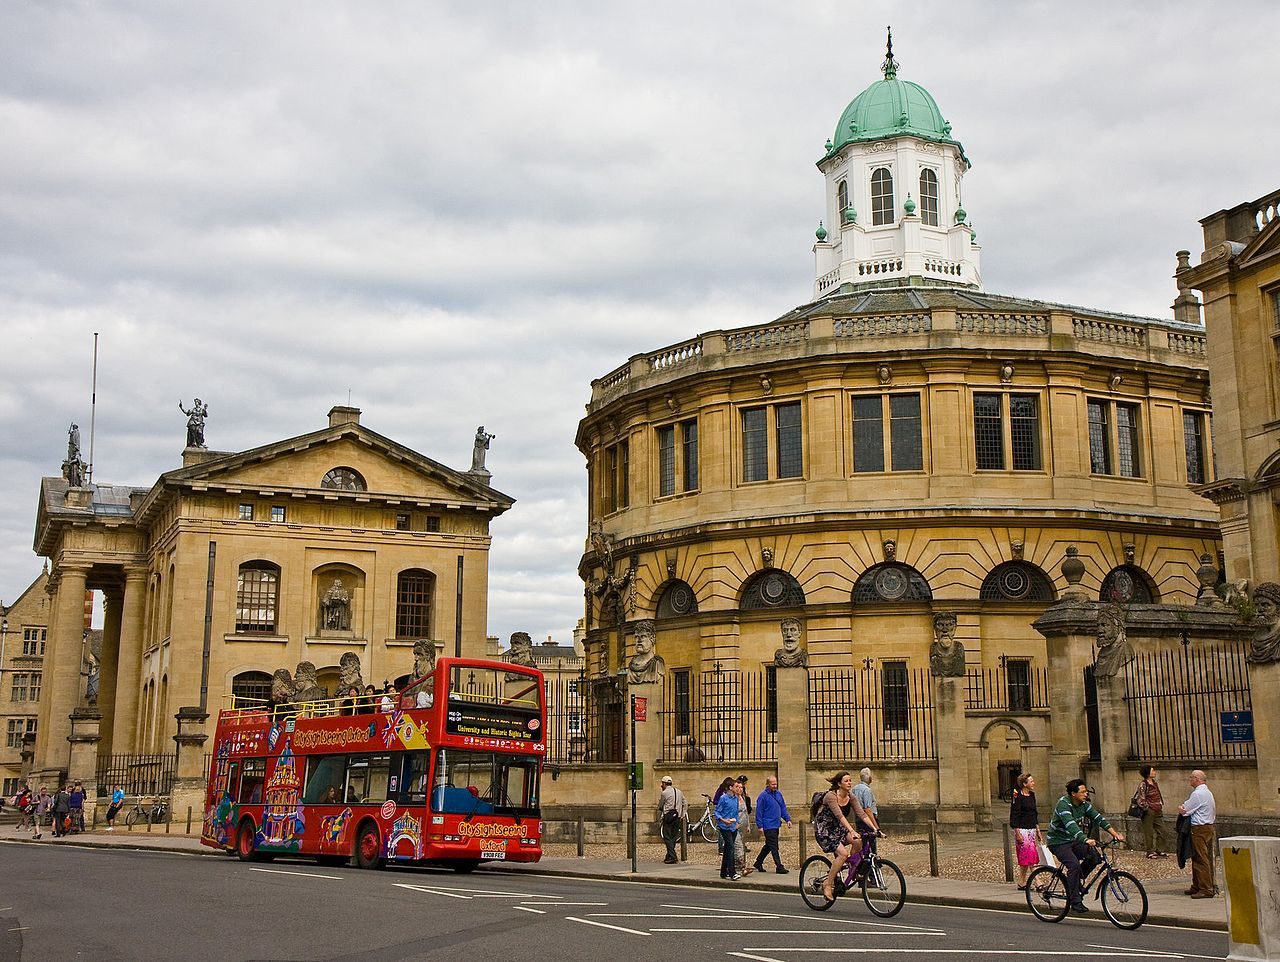 File:City Sightseeing bus in Oxford, England 12 - Broad ...